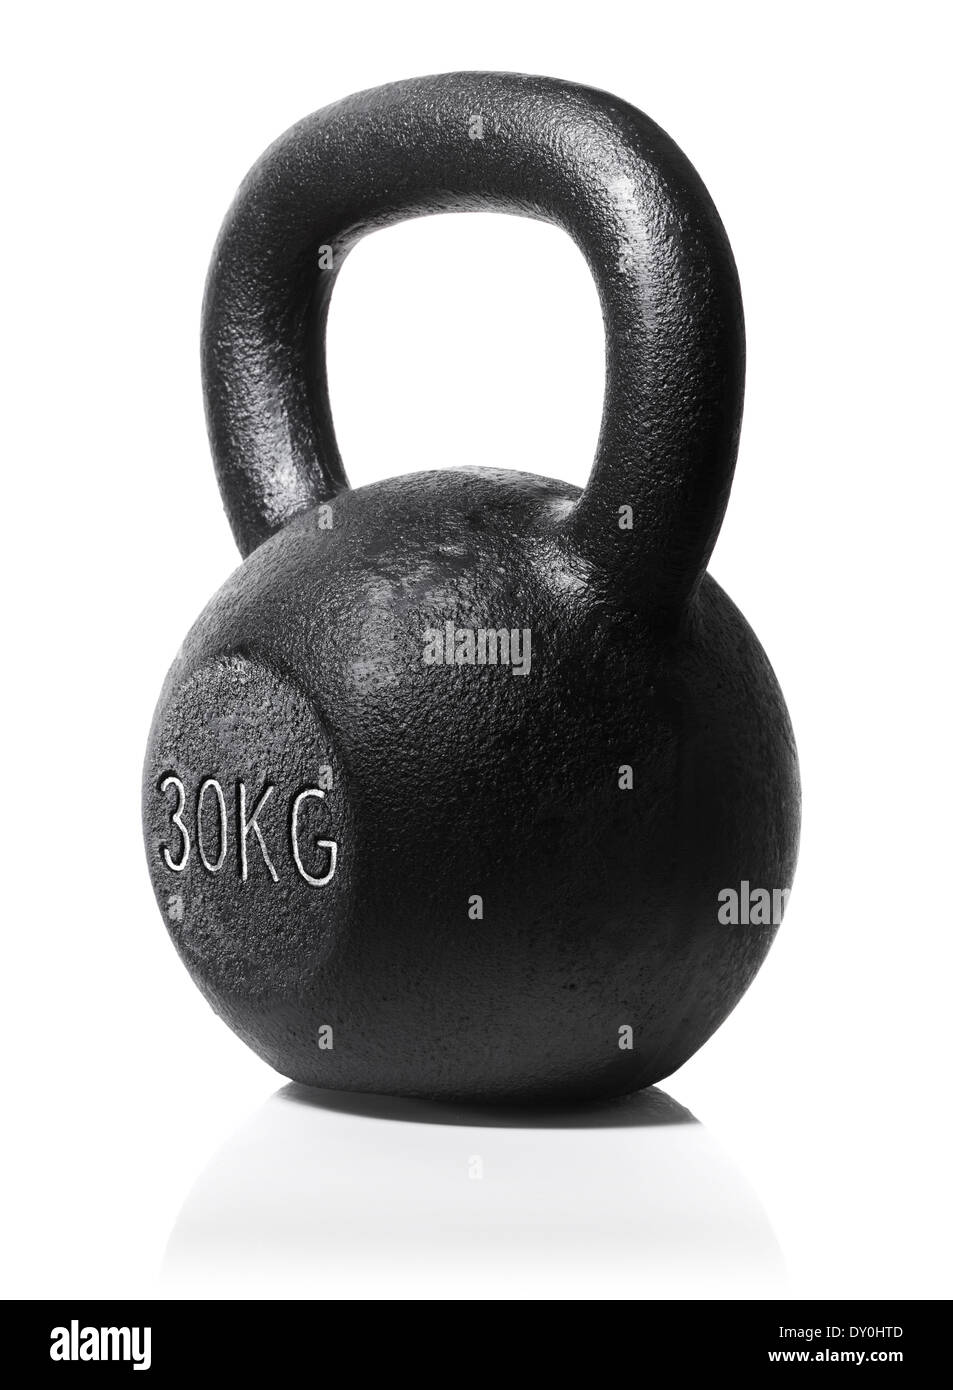 A rough and tough heavy 30 kg 66 lbs cast iron kettlebell isolated on white with natural reflection. - Stock Image